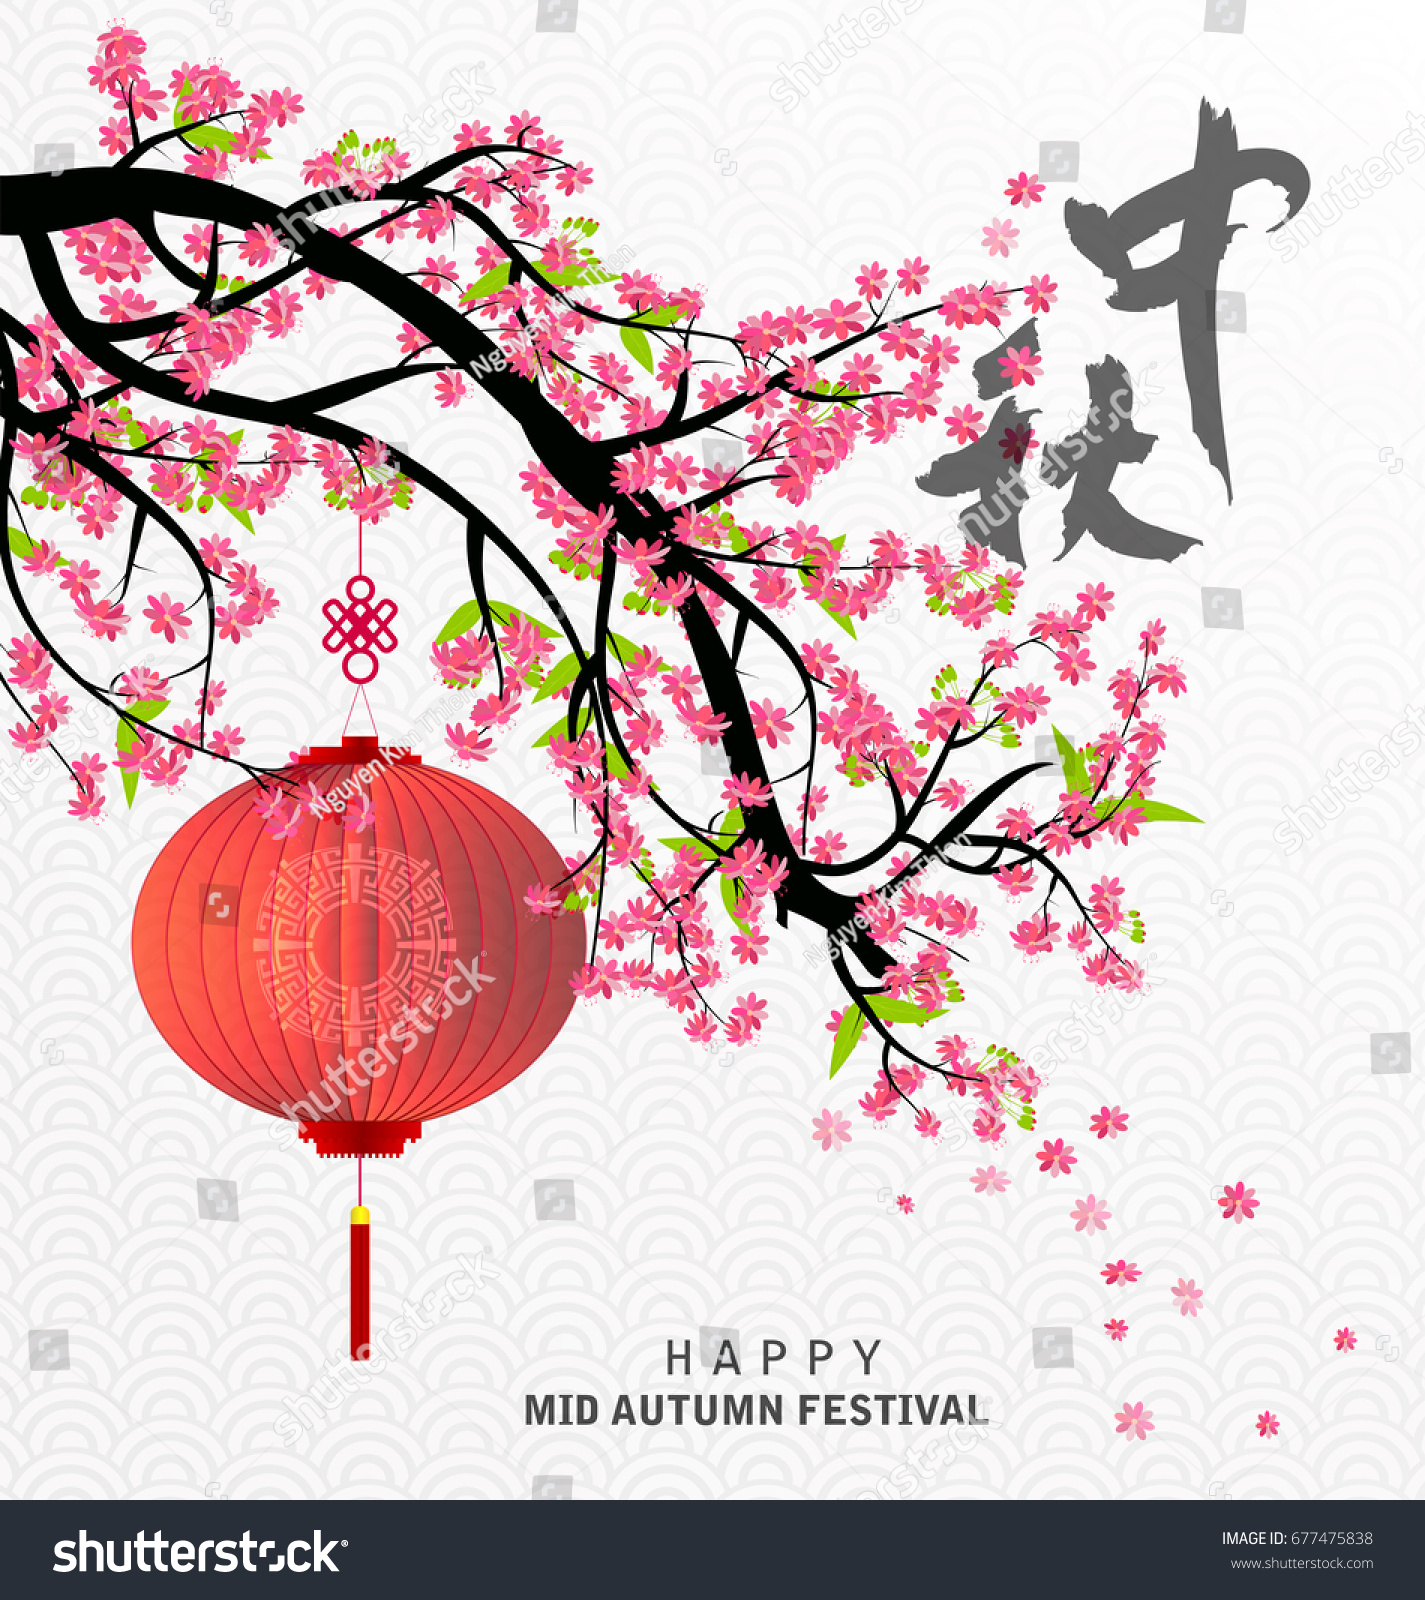 Mid Autumn Festival In Chinese Characters